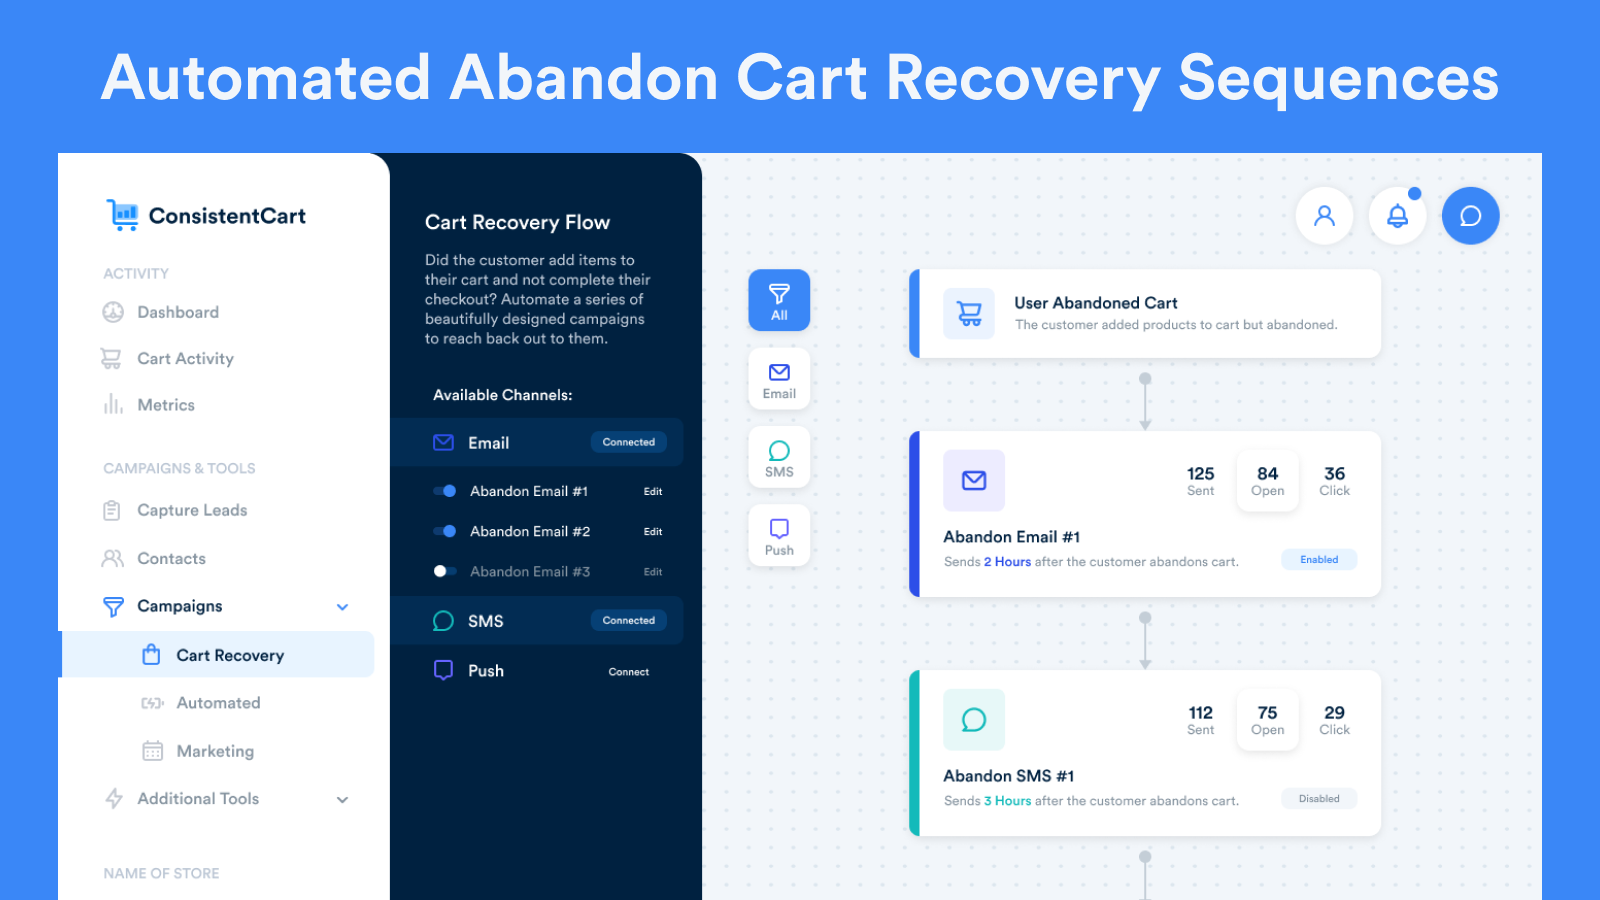 Automated Abandon Cart Recovery Sequences